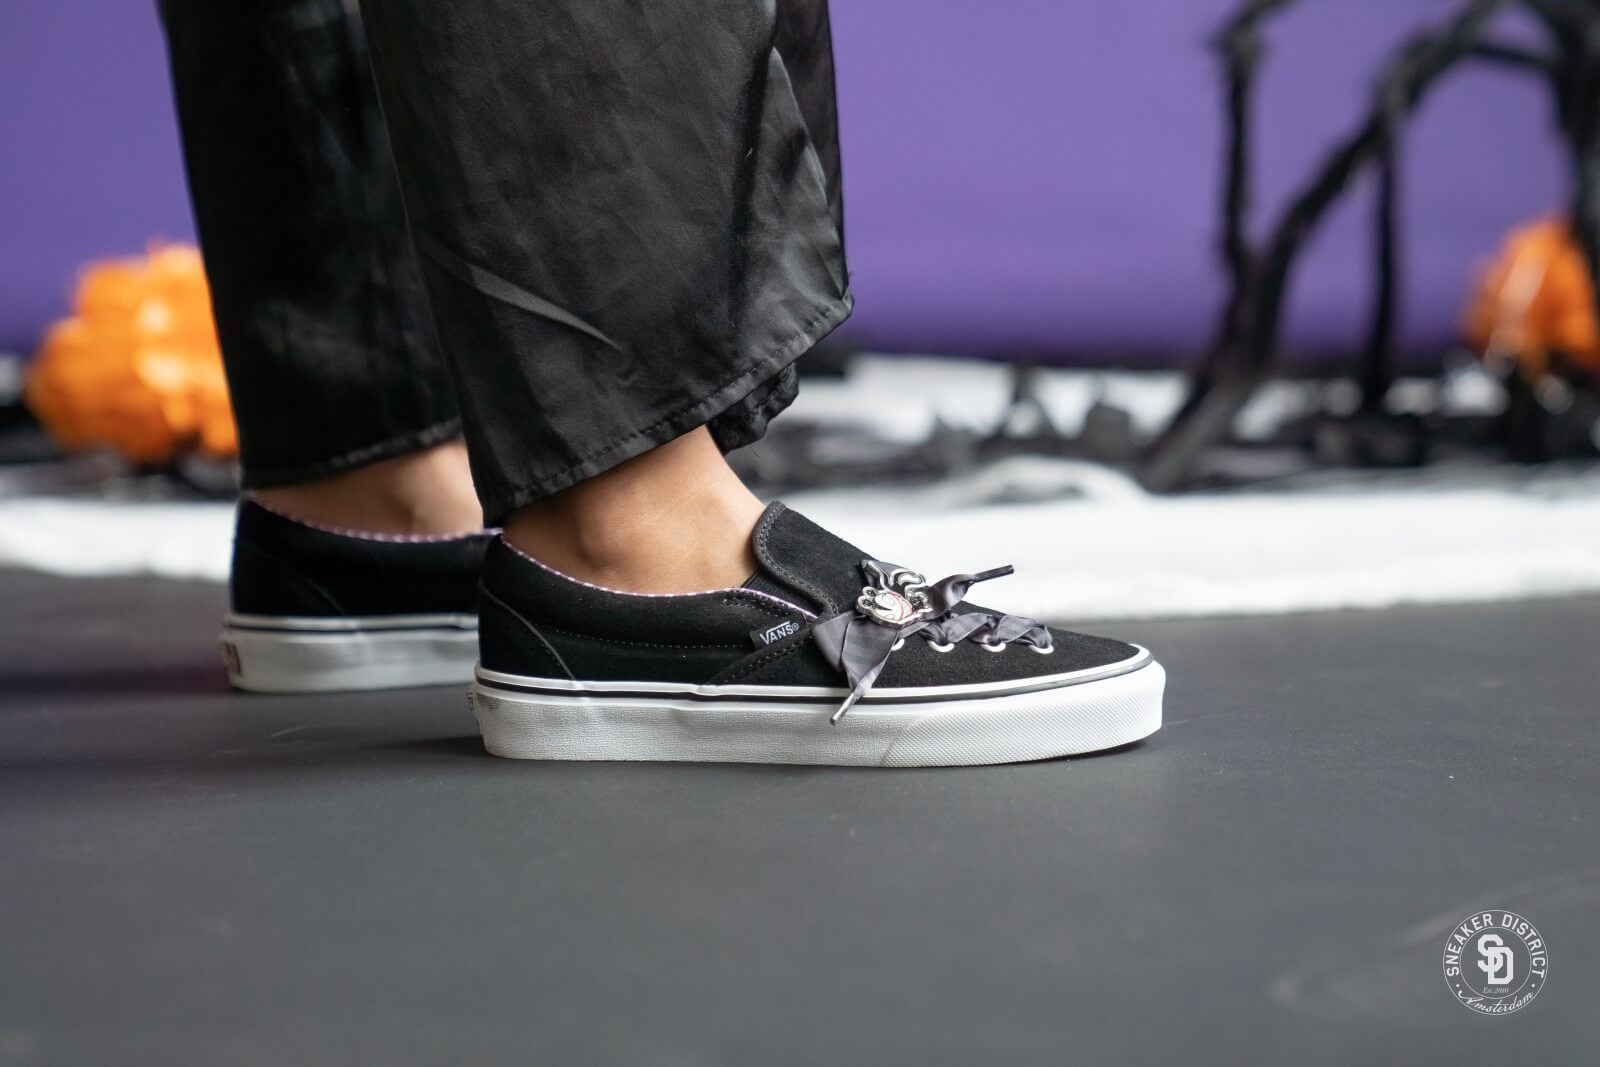 Estado Trampolín Nombre provisional  Vans x The Nightmare Before Christmas Slip-On Lace - VN0A4P3BTC51